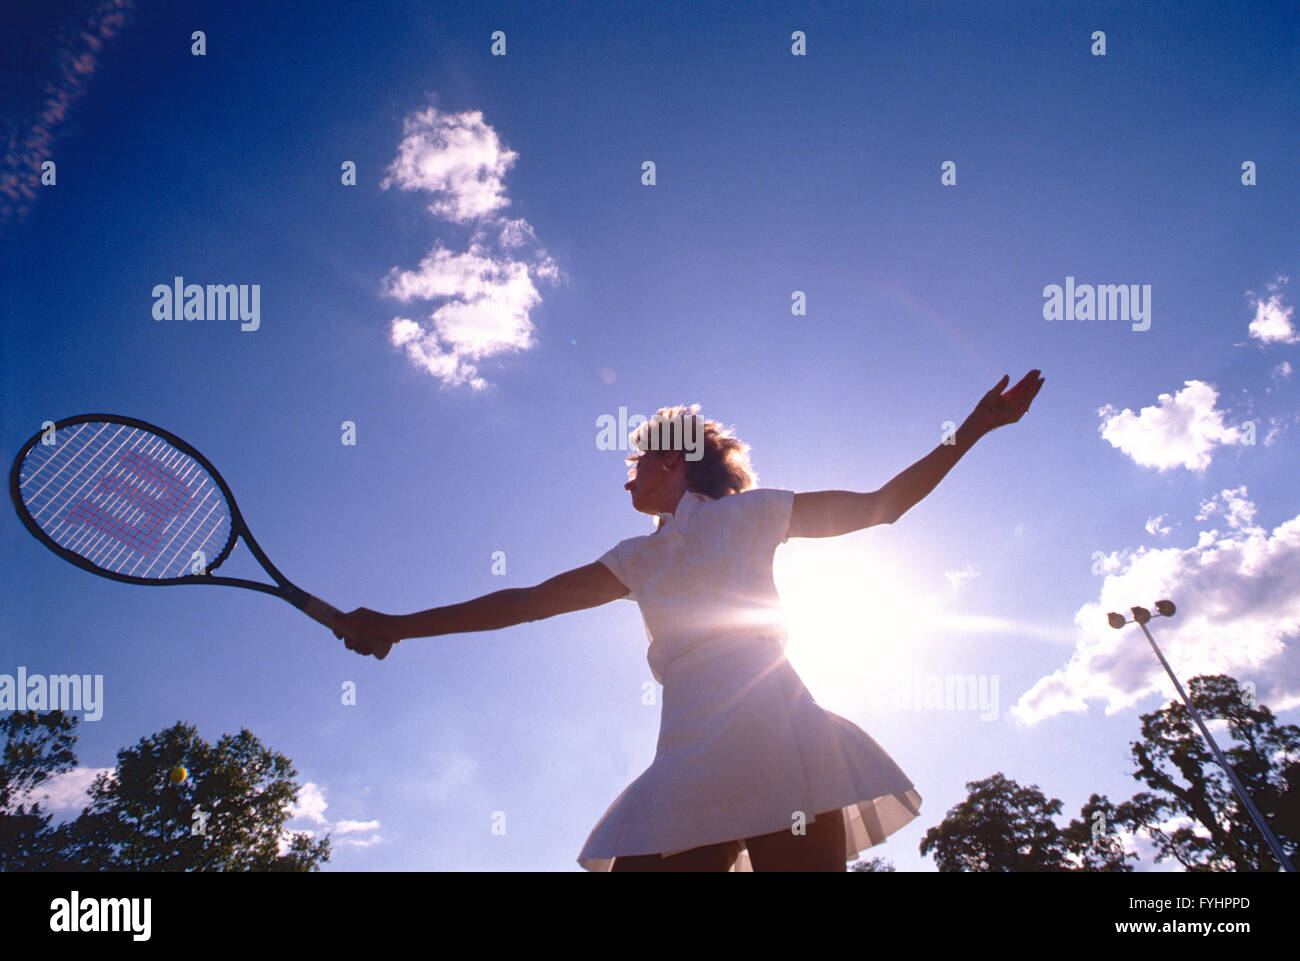 Tennis player frapper la balle avec une raquette Photo Stock